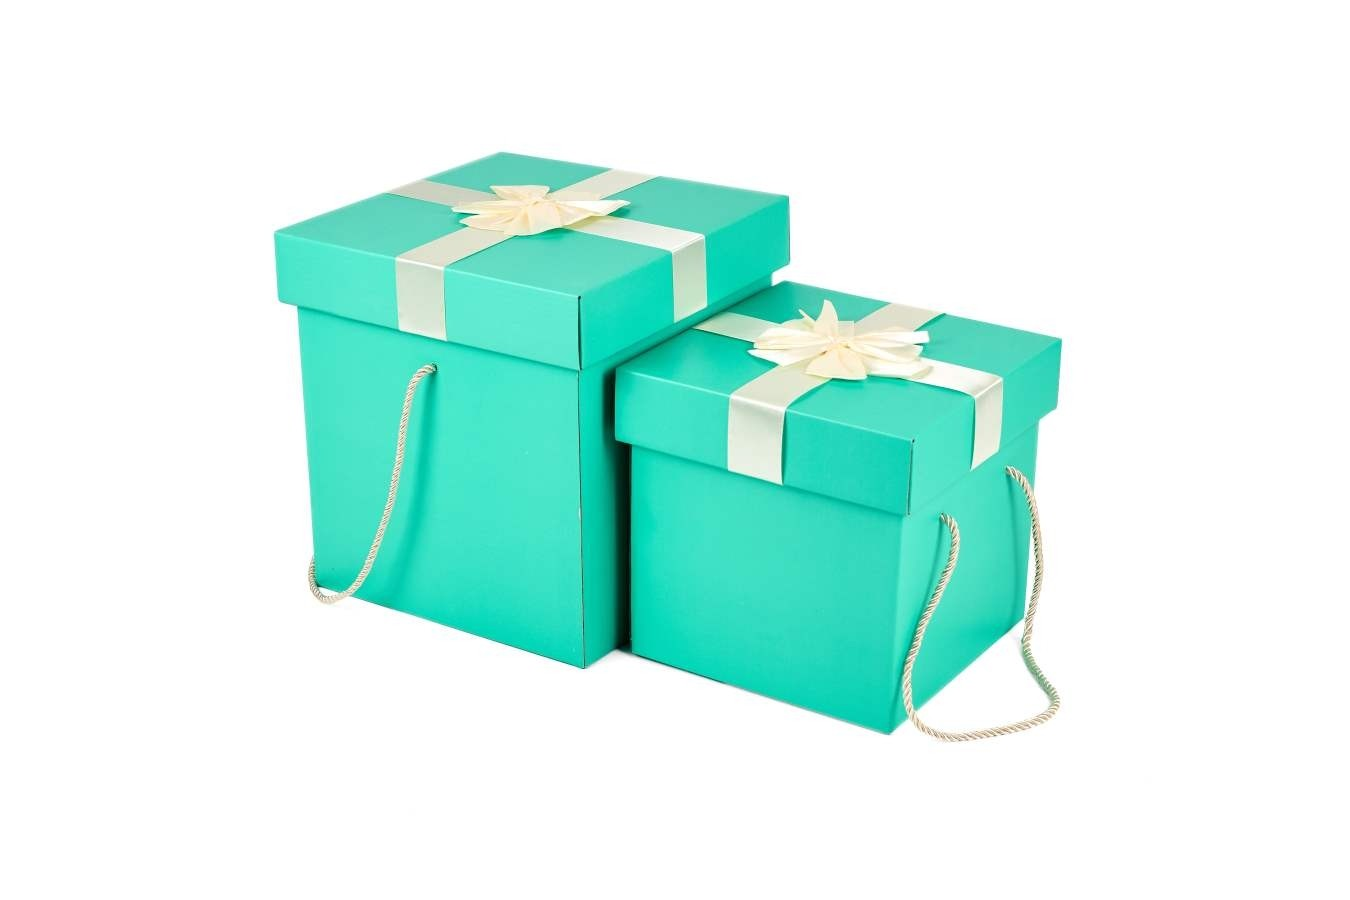 Iconic Blue Cube Size Gift Box with White Ribbon